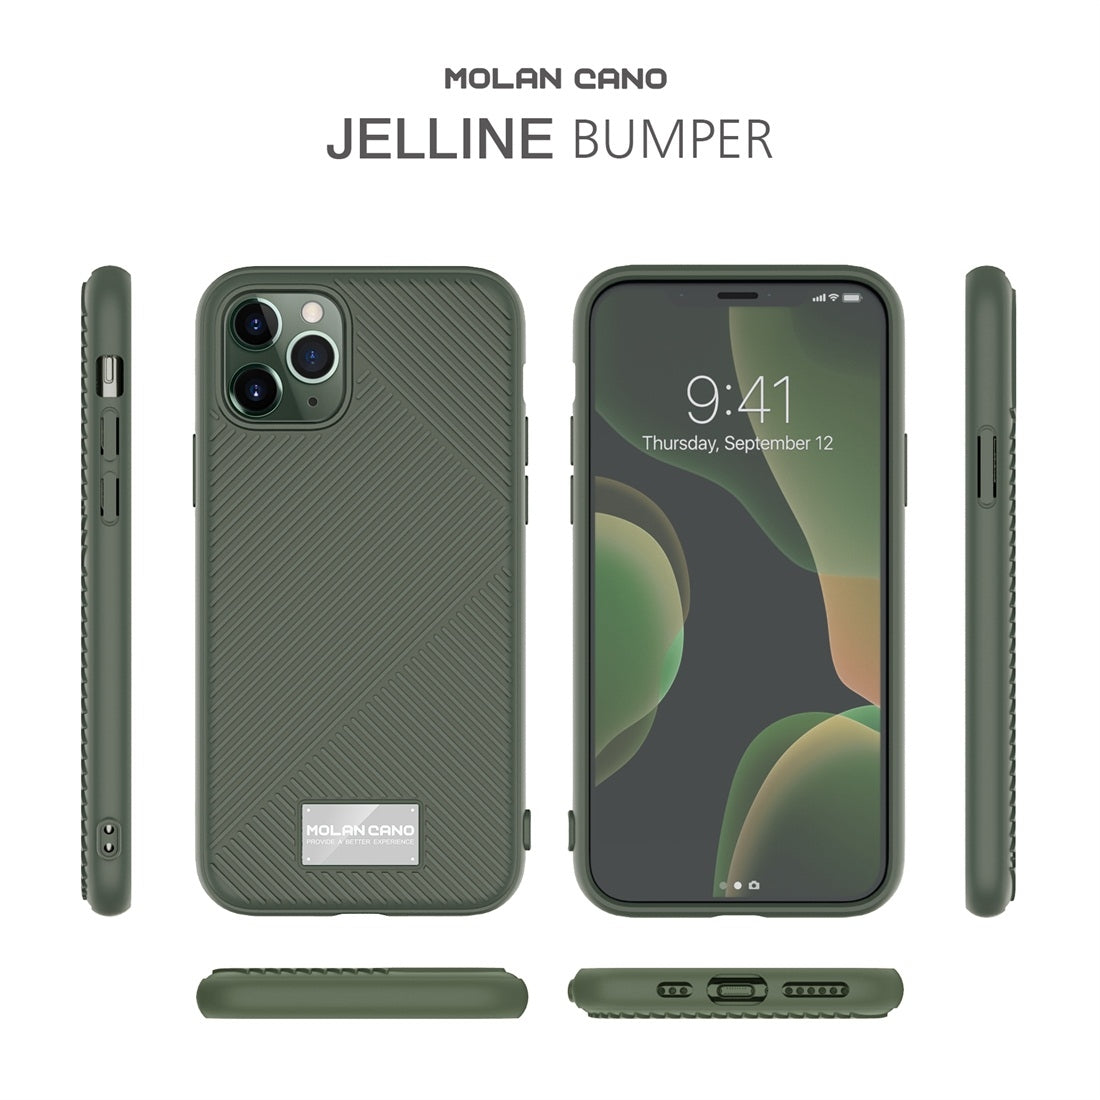 For iPhone 11 MOLANCANO JELLINE BUMPER Shockproof TPU Protective Case(Army Green)